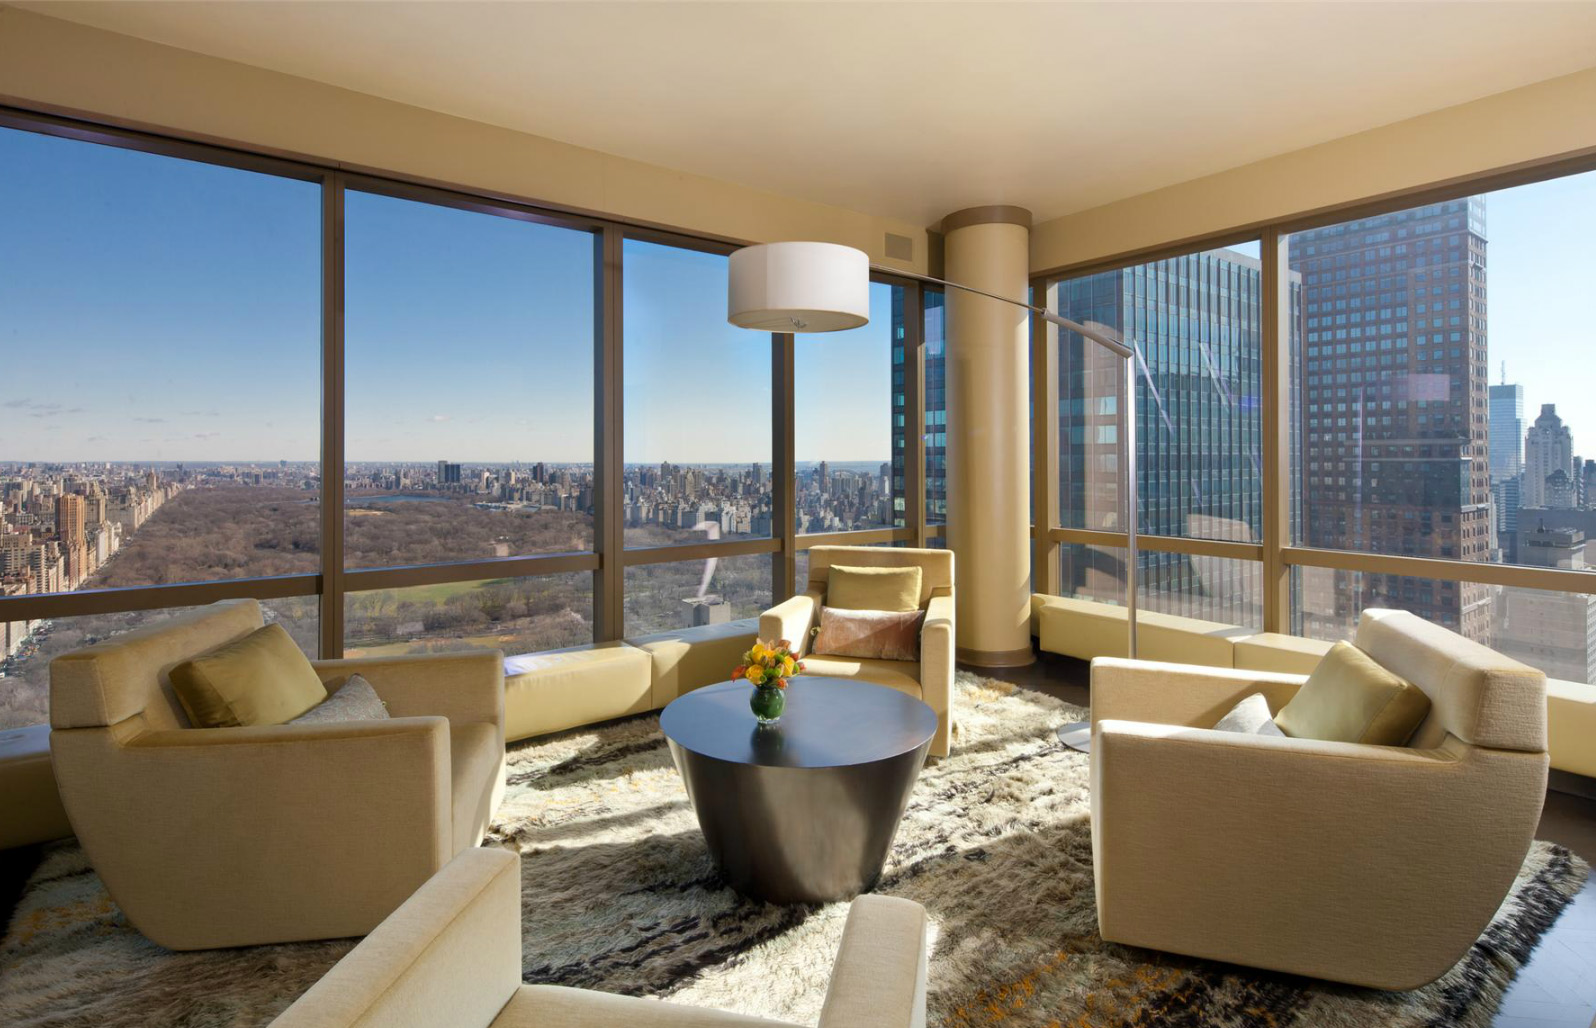 Buy christopher meloni 39 s place and he 39 ll throw in a porsche for Manhattan house apartments for sale